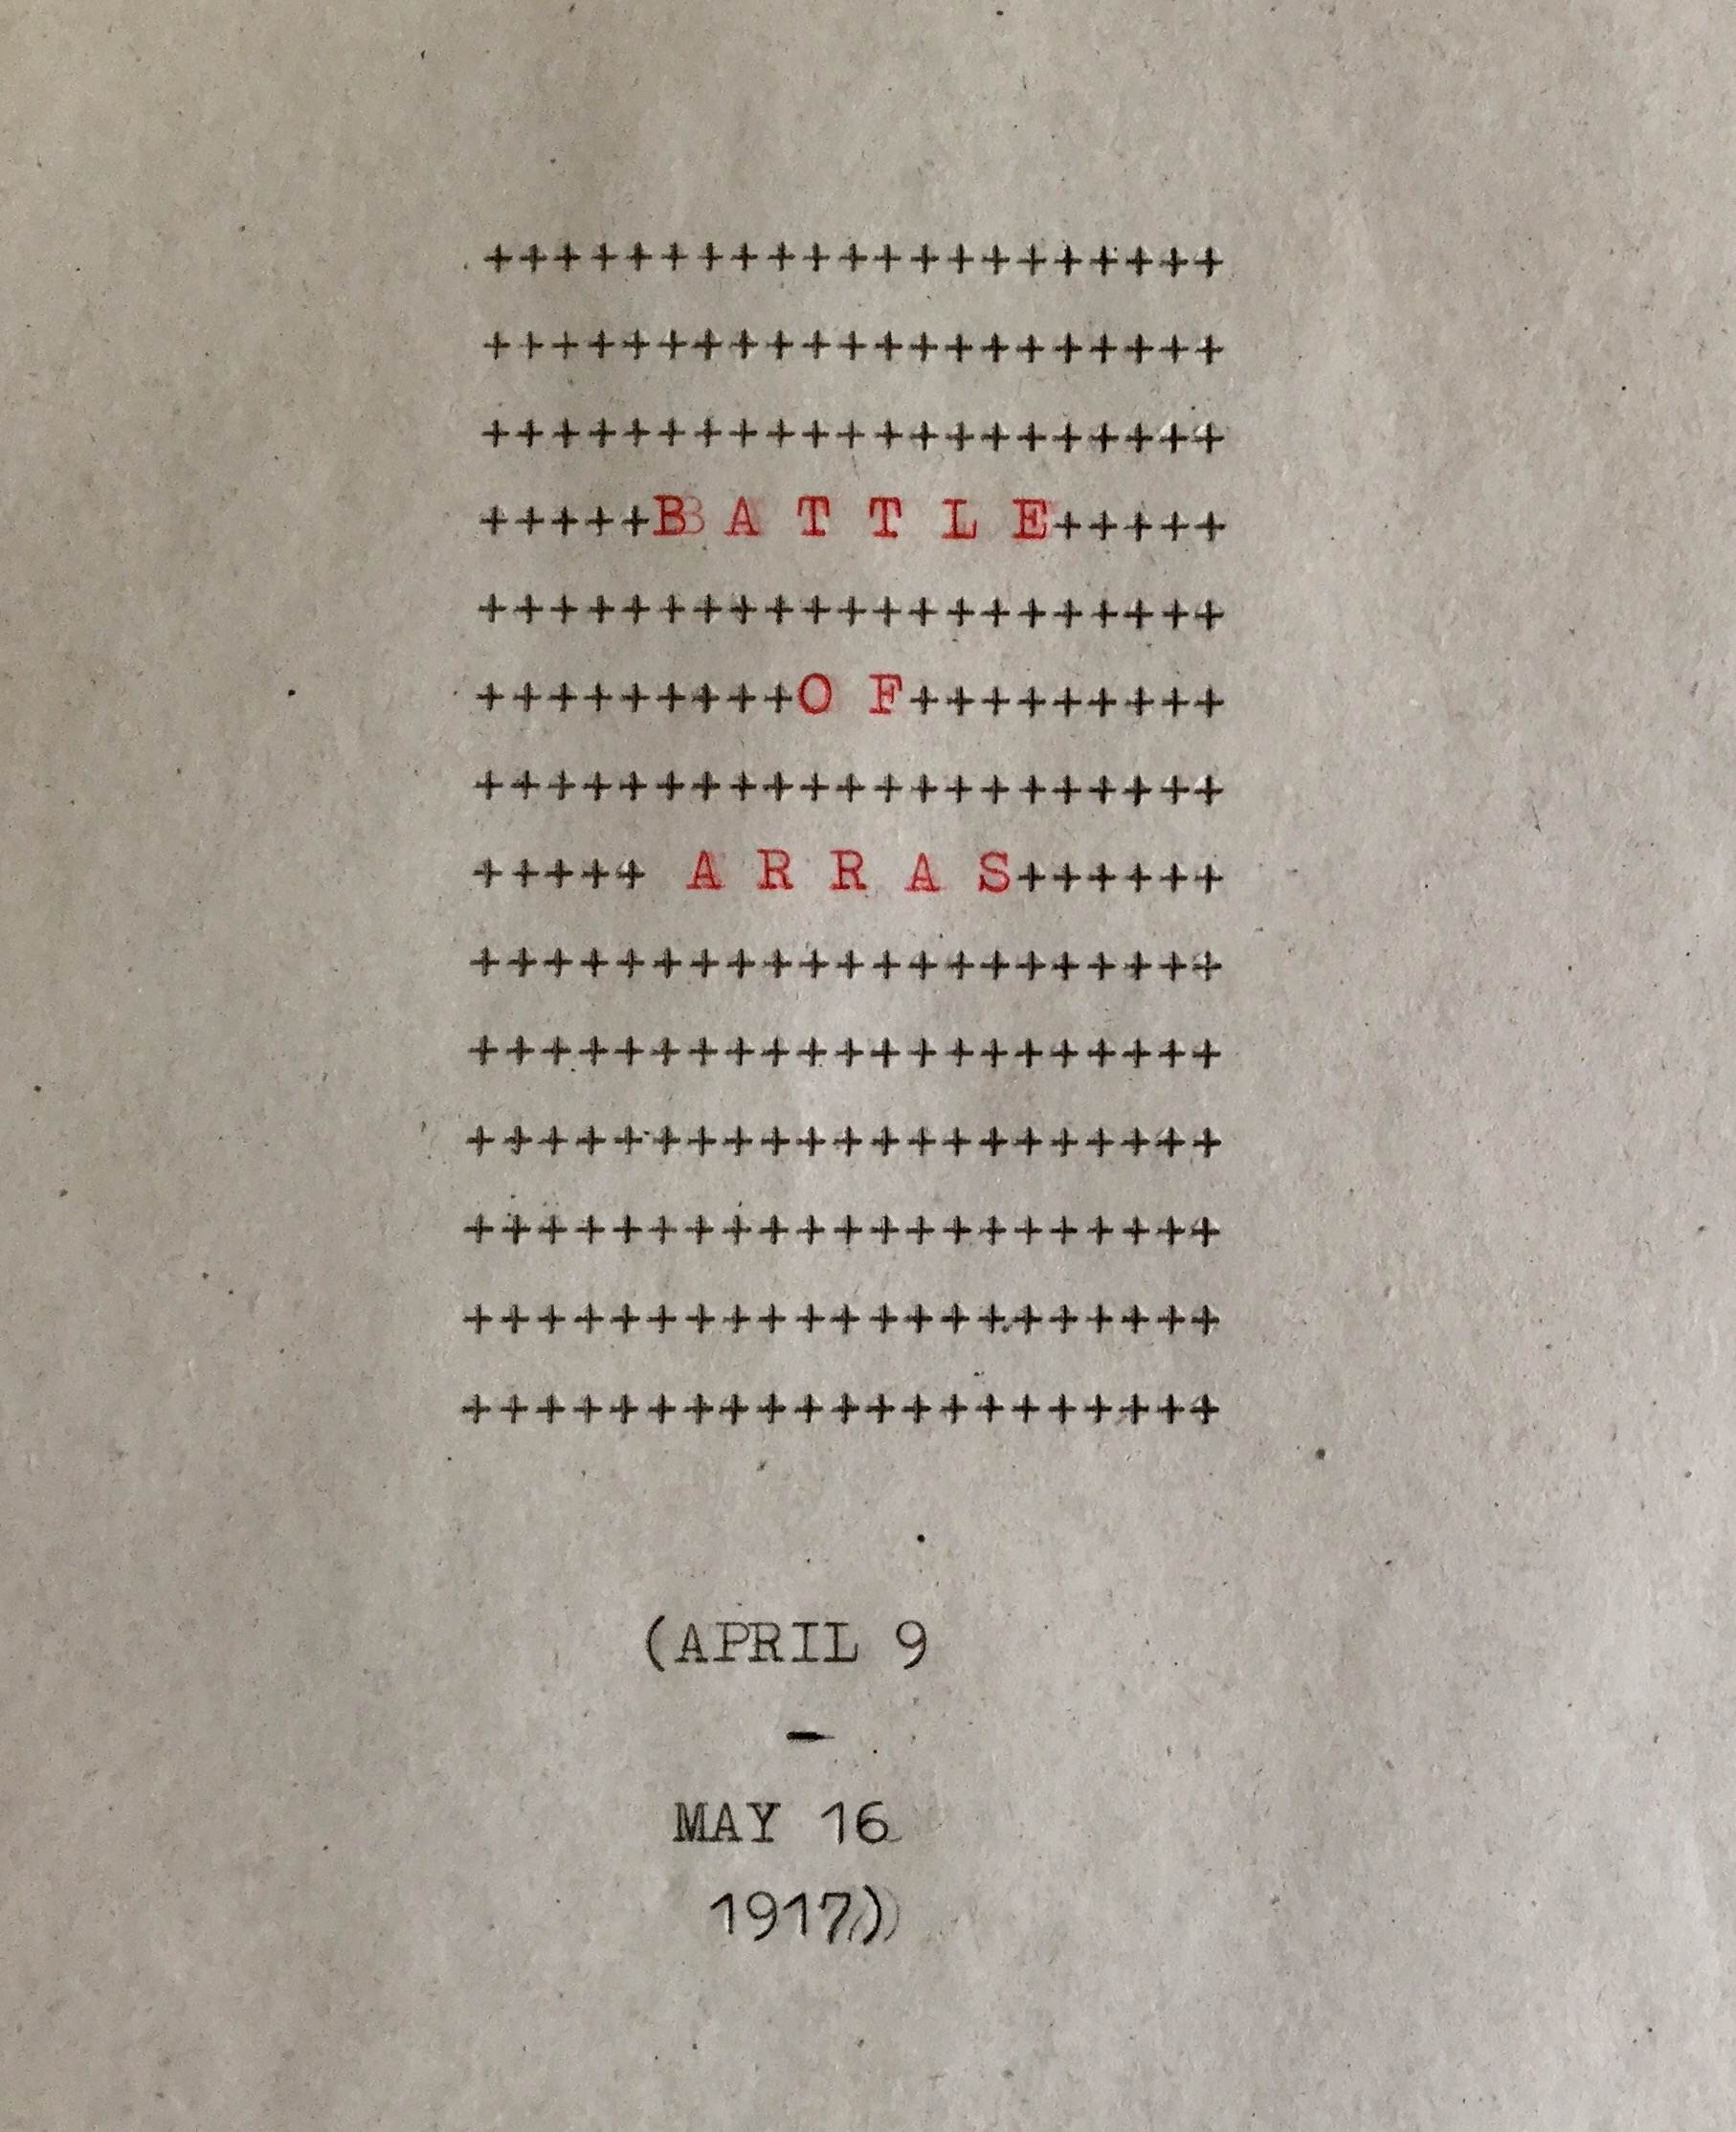 a sheet of paper, typewritten plus signs and in red the words